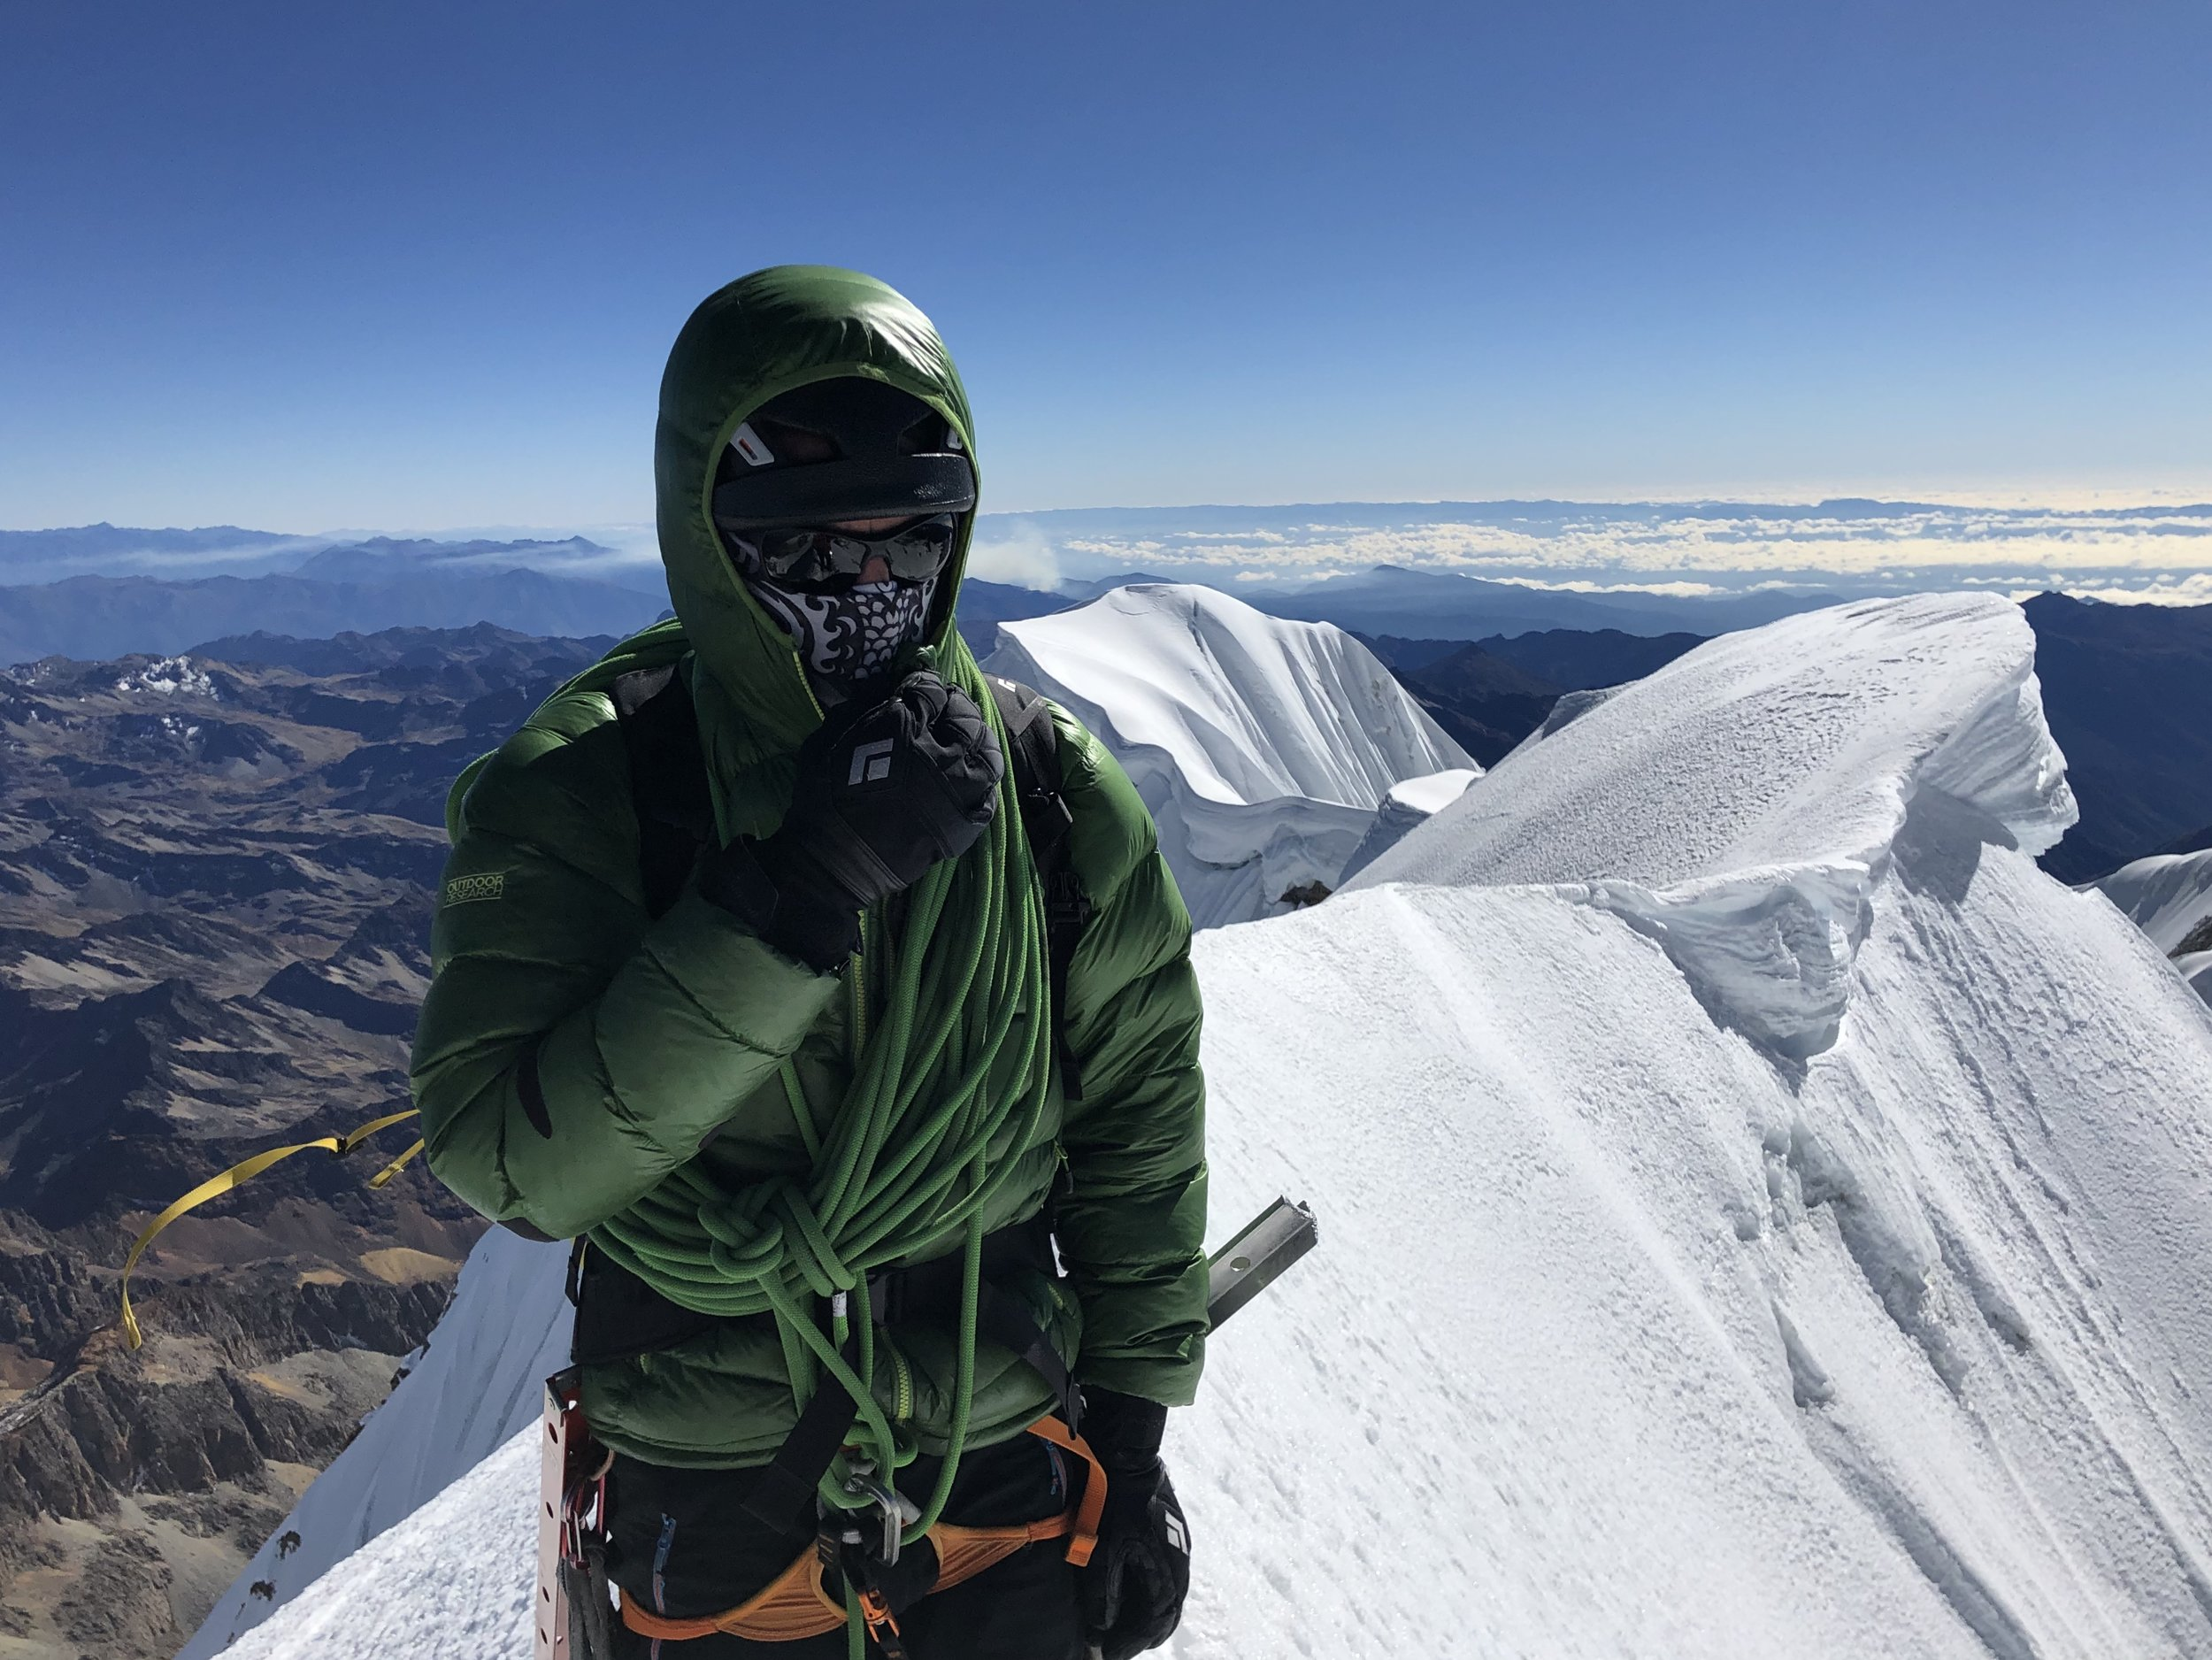 Dale, looking cold on the summit